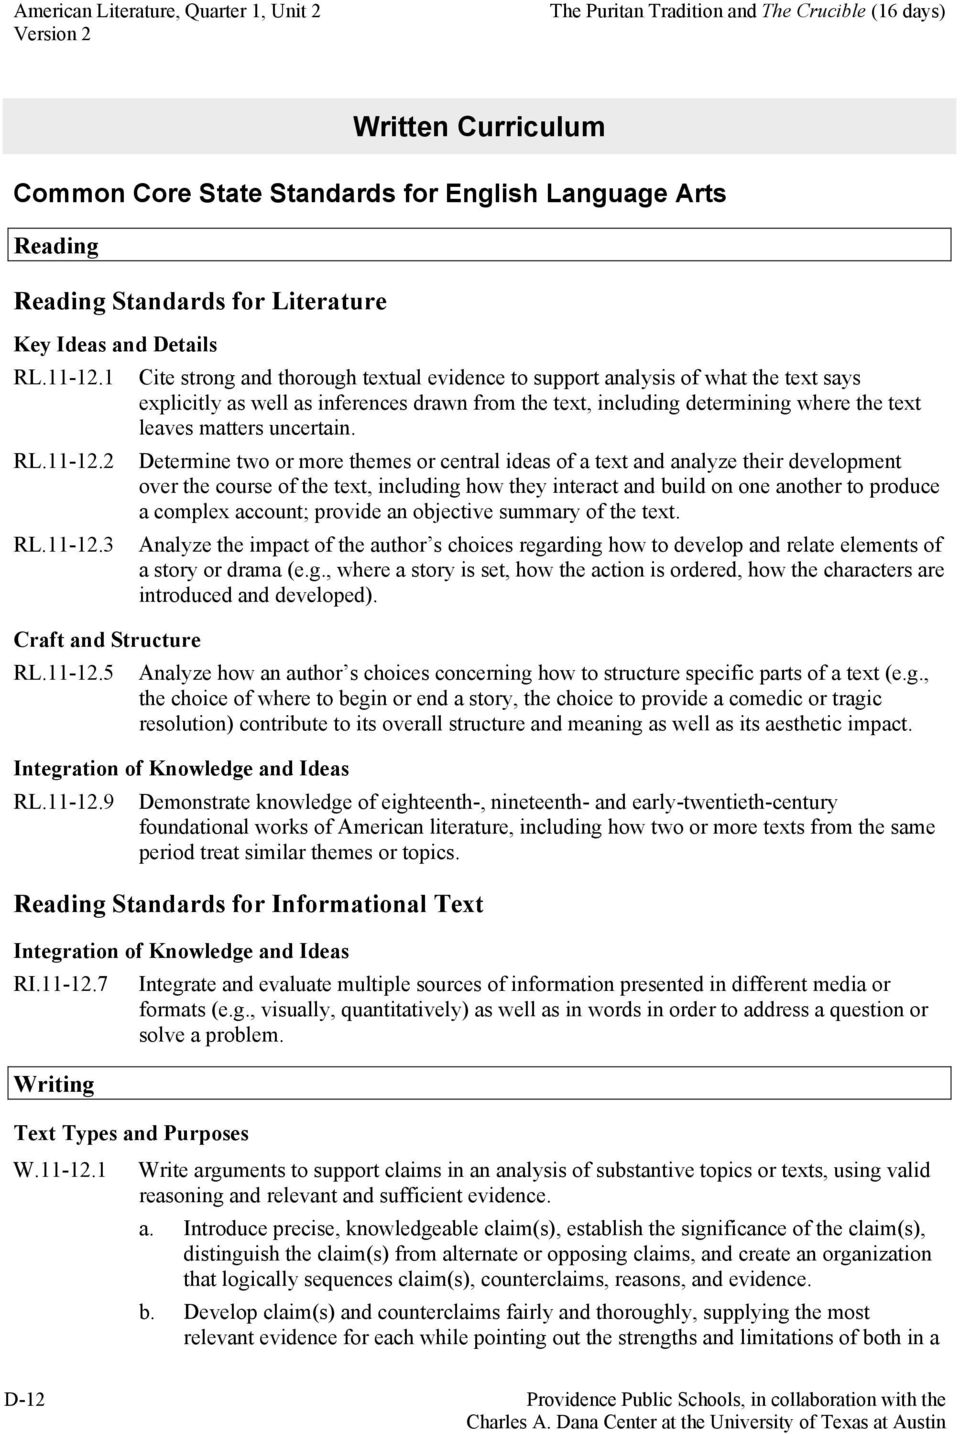 1 Cite strong and thorough textual evidence to support analysis of what the text says explicitly as well as inferences drawn from the text, including determining where the text leaves matters